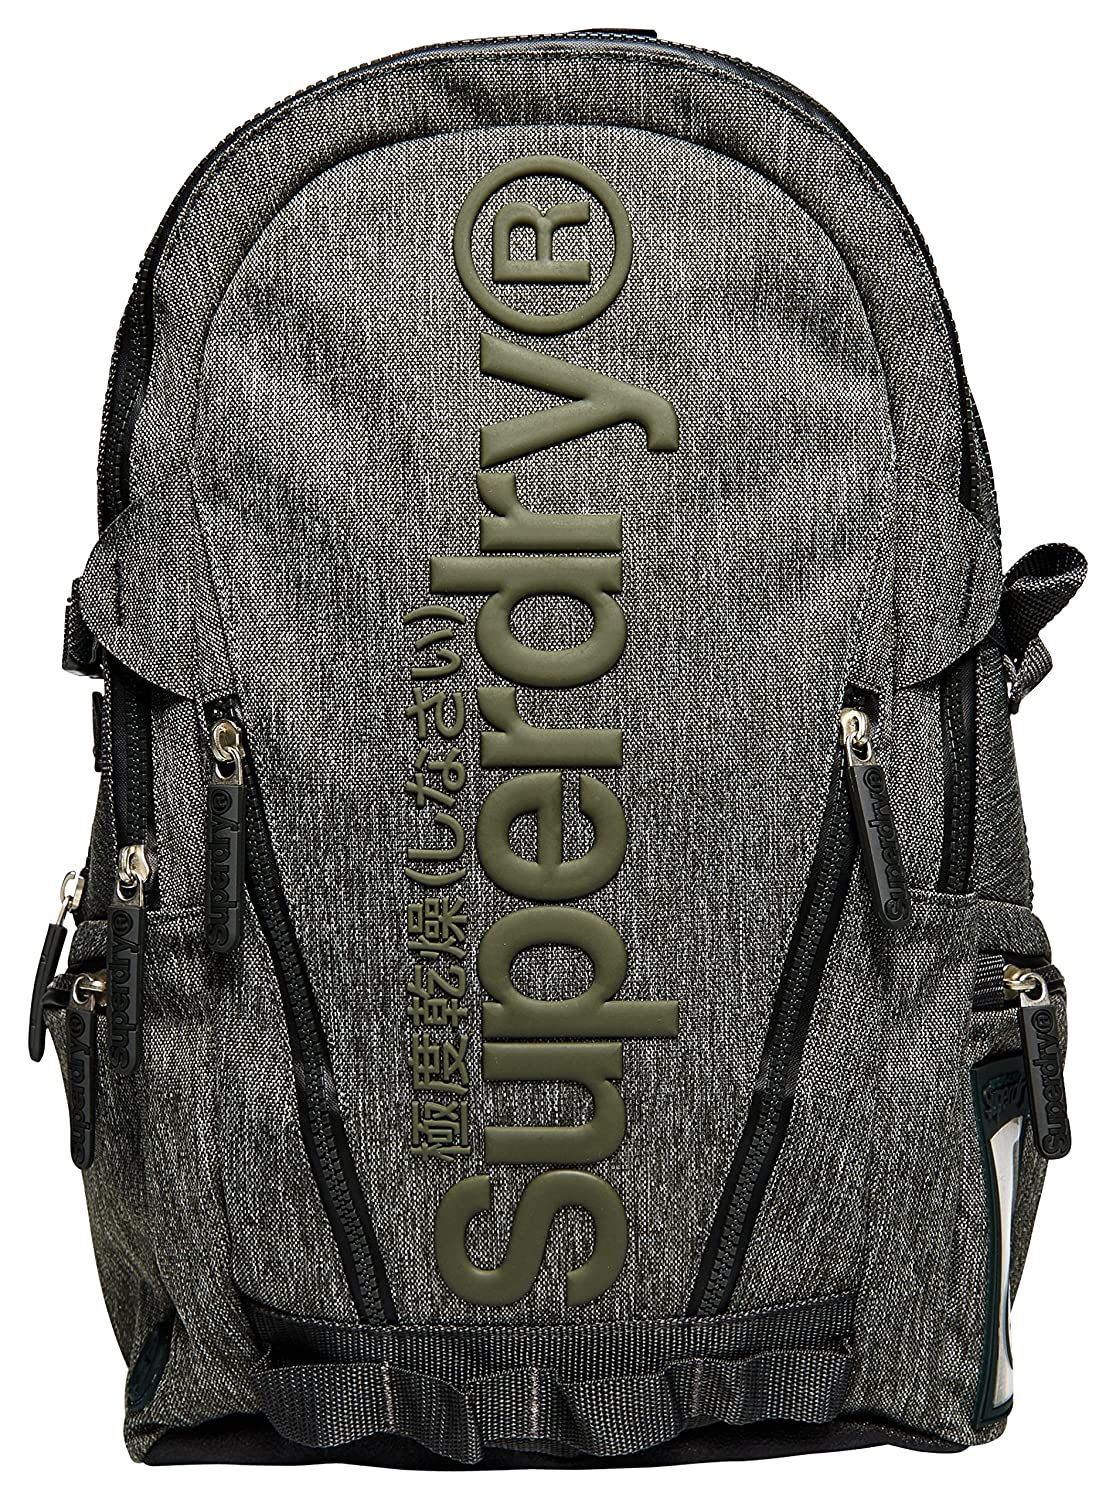 Tenacitee Living In New Jersey with Iowa Roots Grey Brushed Canvas Messenger Bag